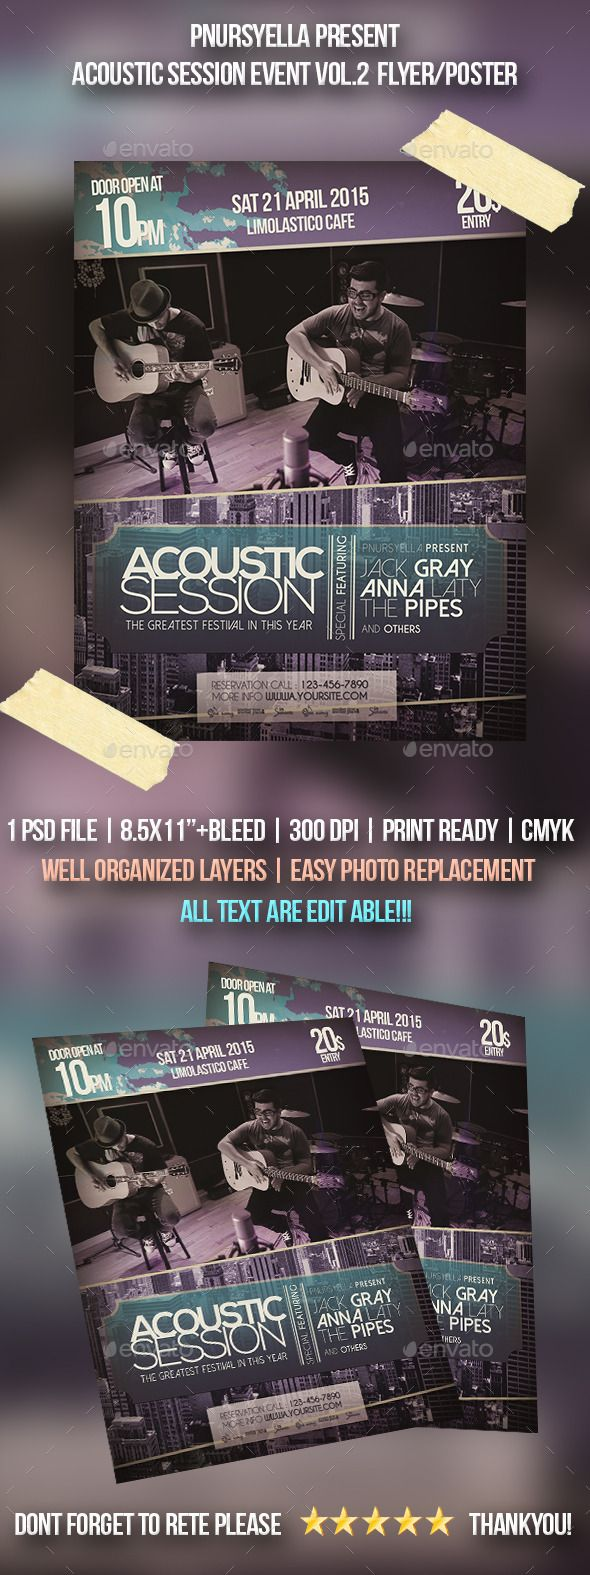 8 5x11 poster design - Acoustic Event Flyer Poster Vol 2